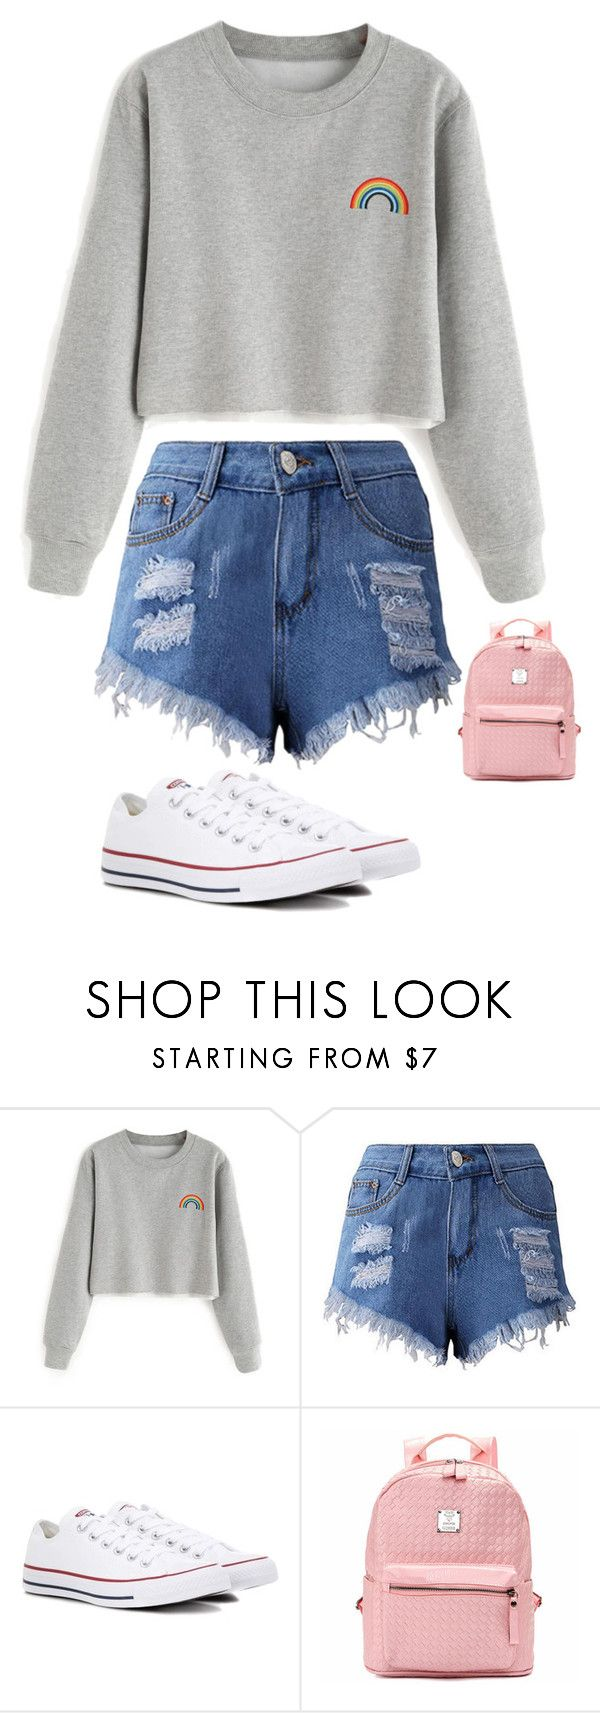 """Untitled #2699"" by anisaortiz ❤ liked on Polyvore featuring Converse"